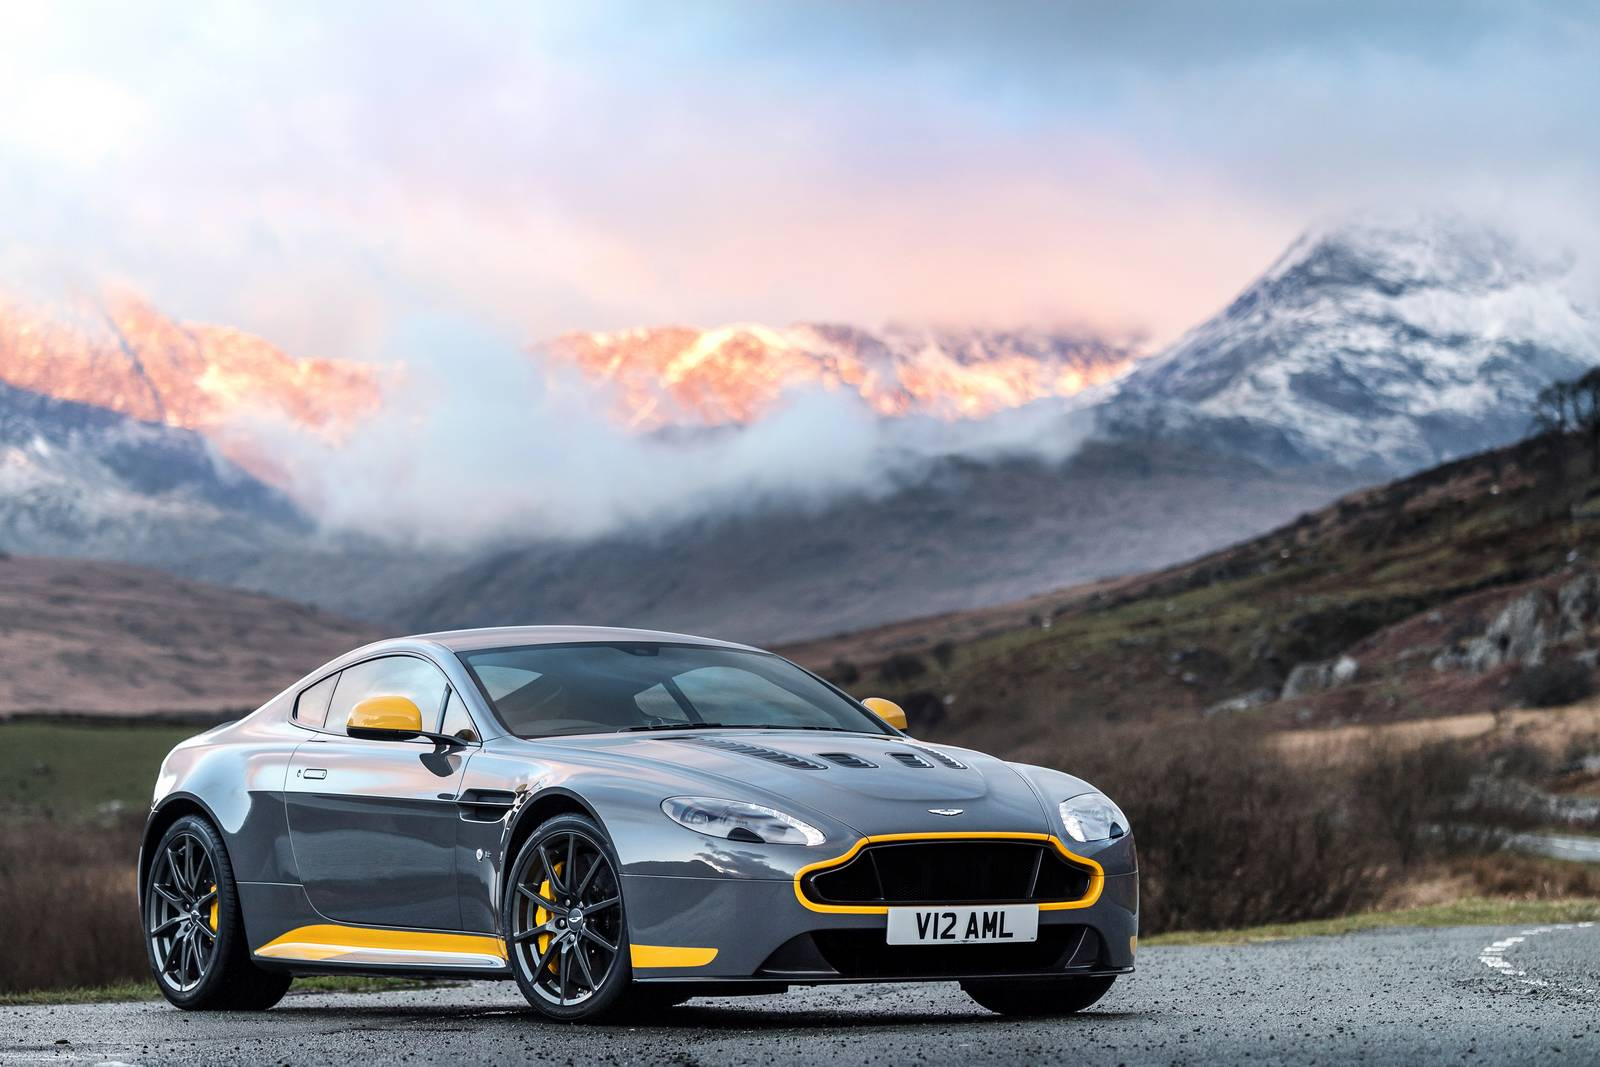 Official: 2017 Aston Martin V12 Vantage S Manual